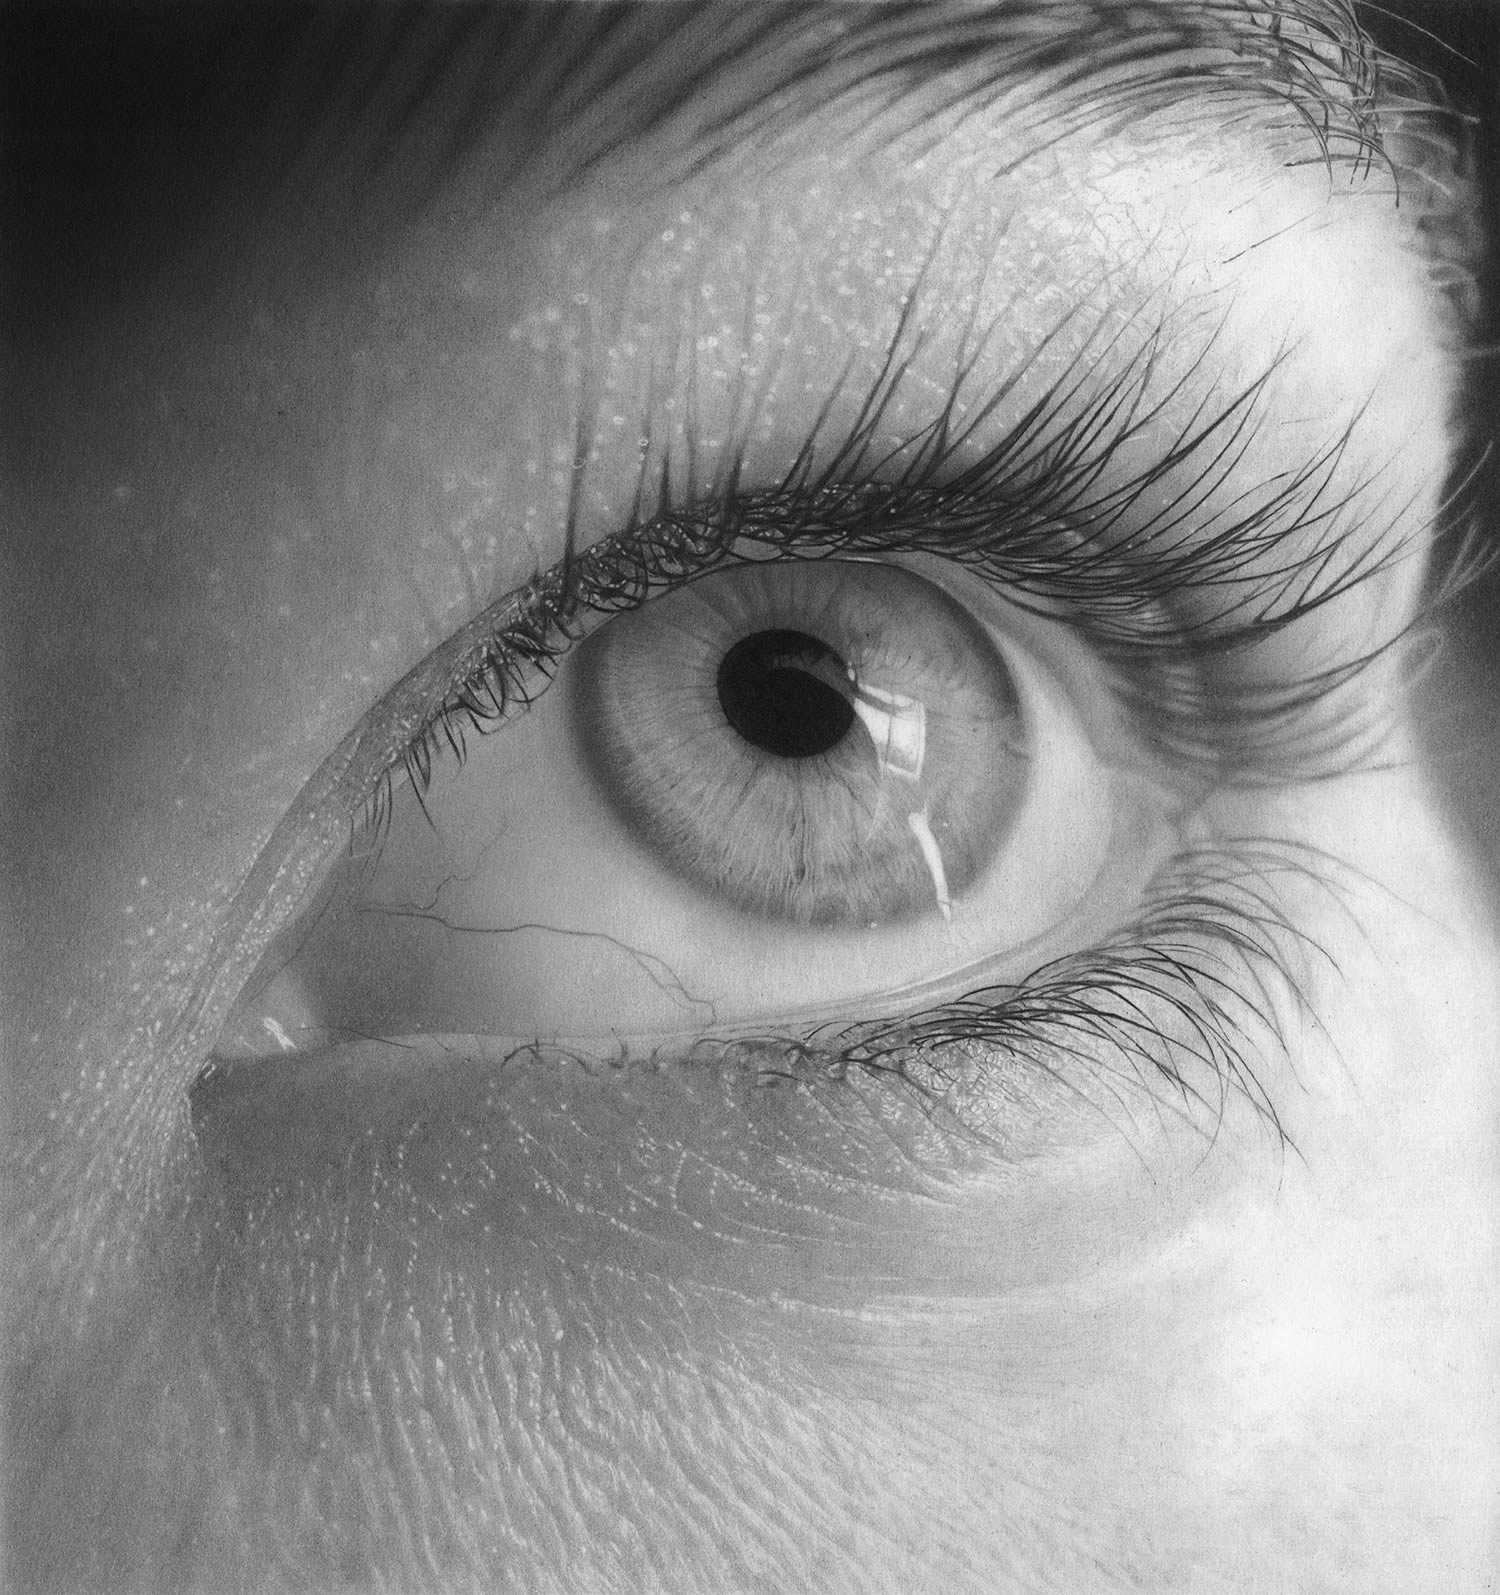 eye looking up, pencil drawing